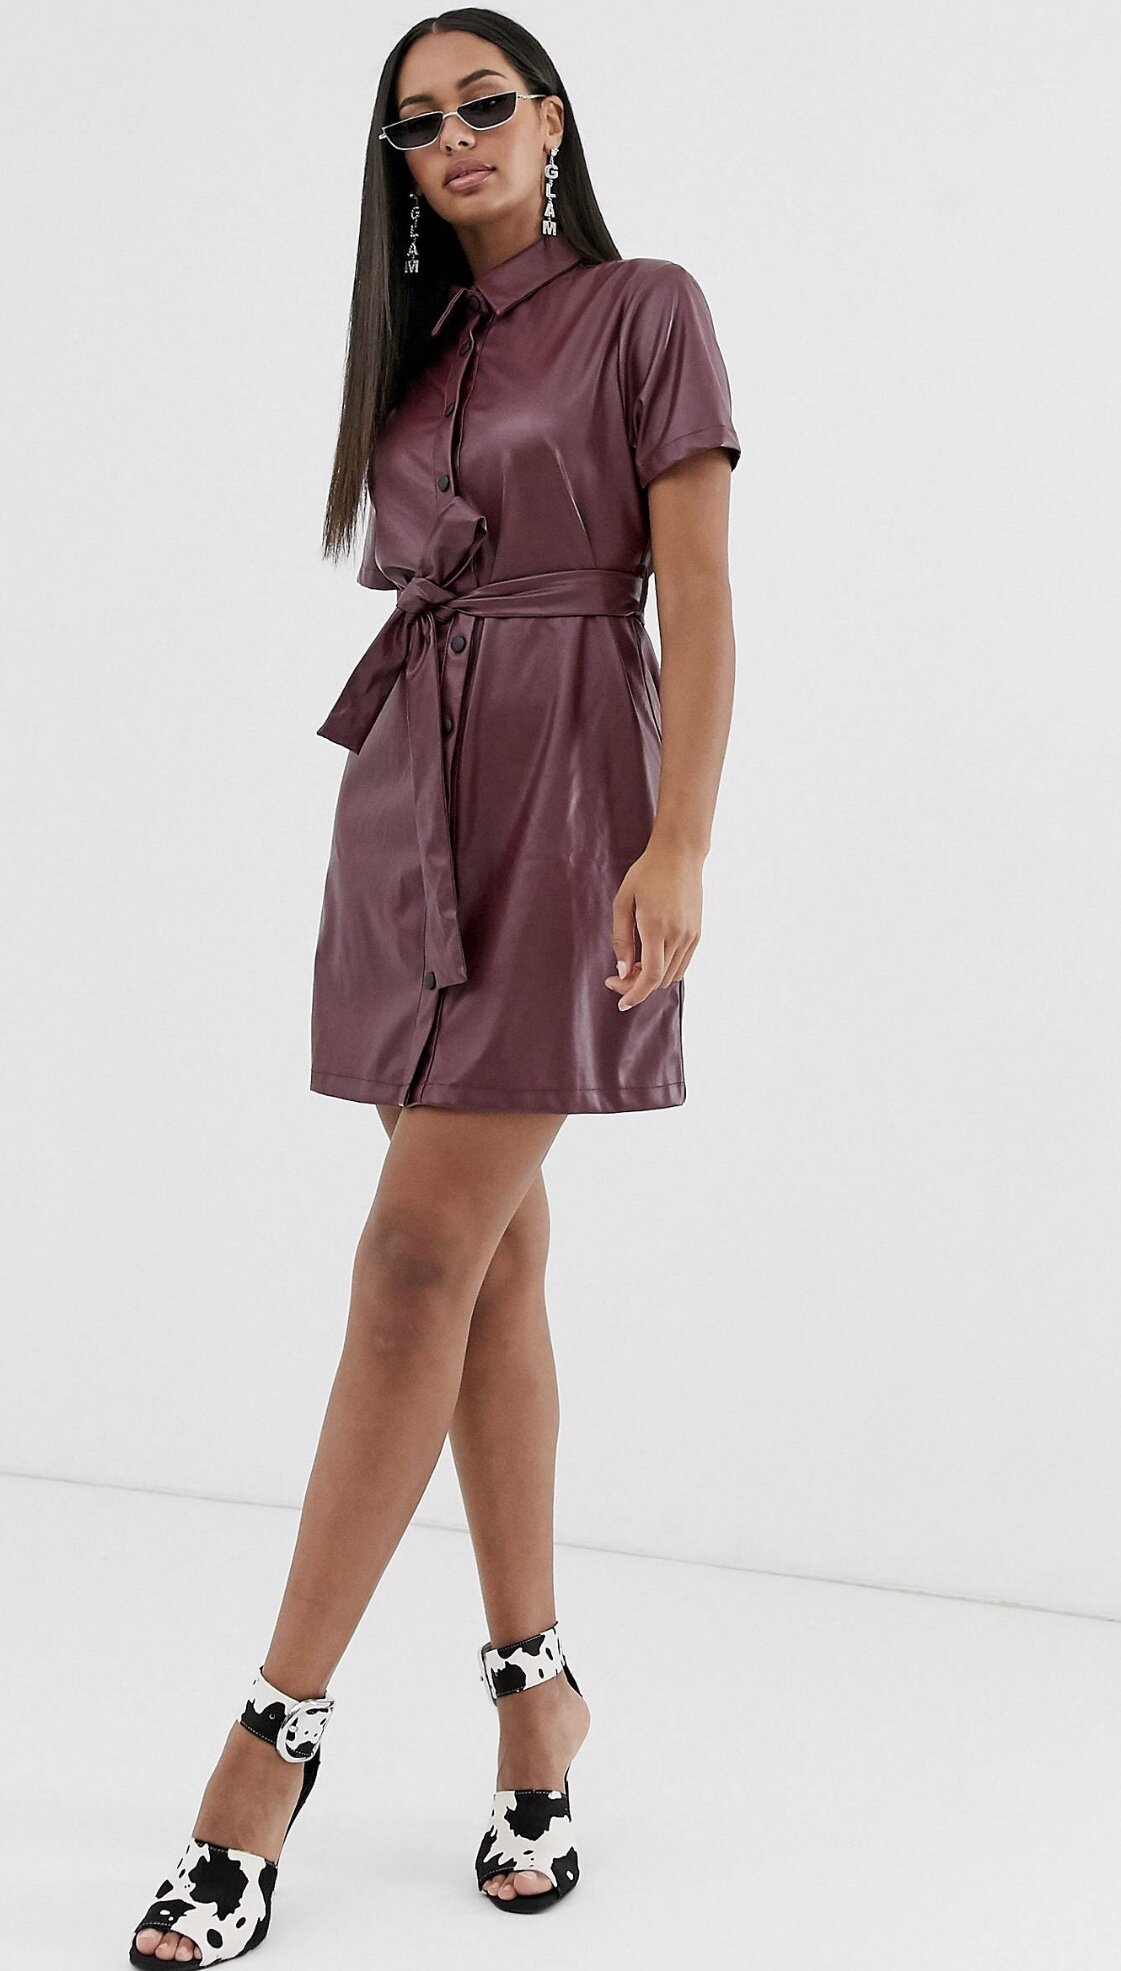 LEATHER LOOK SHIRT DRESS